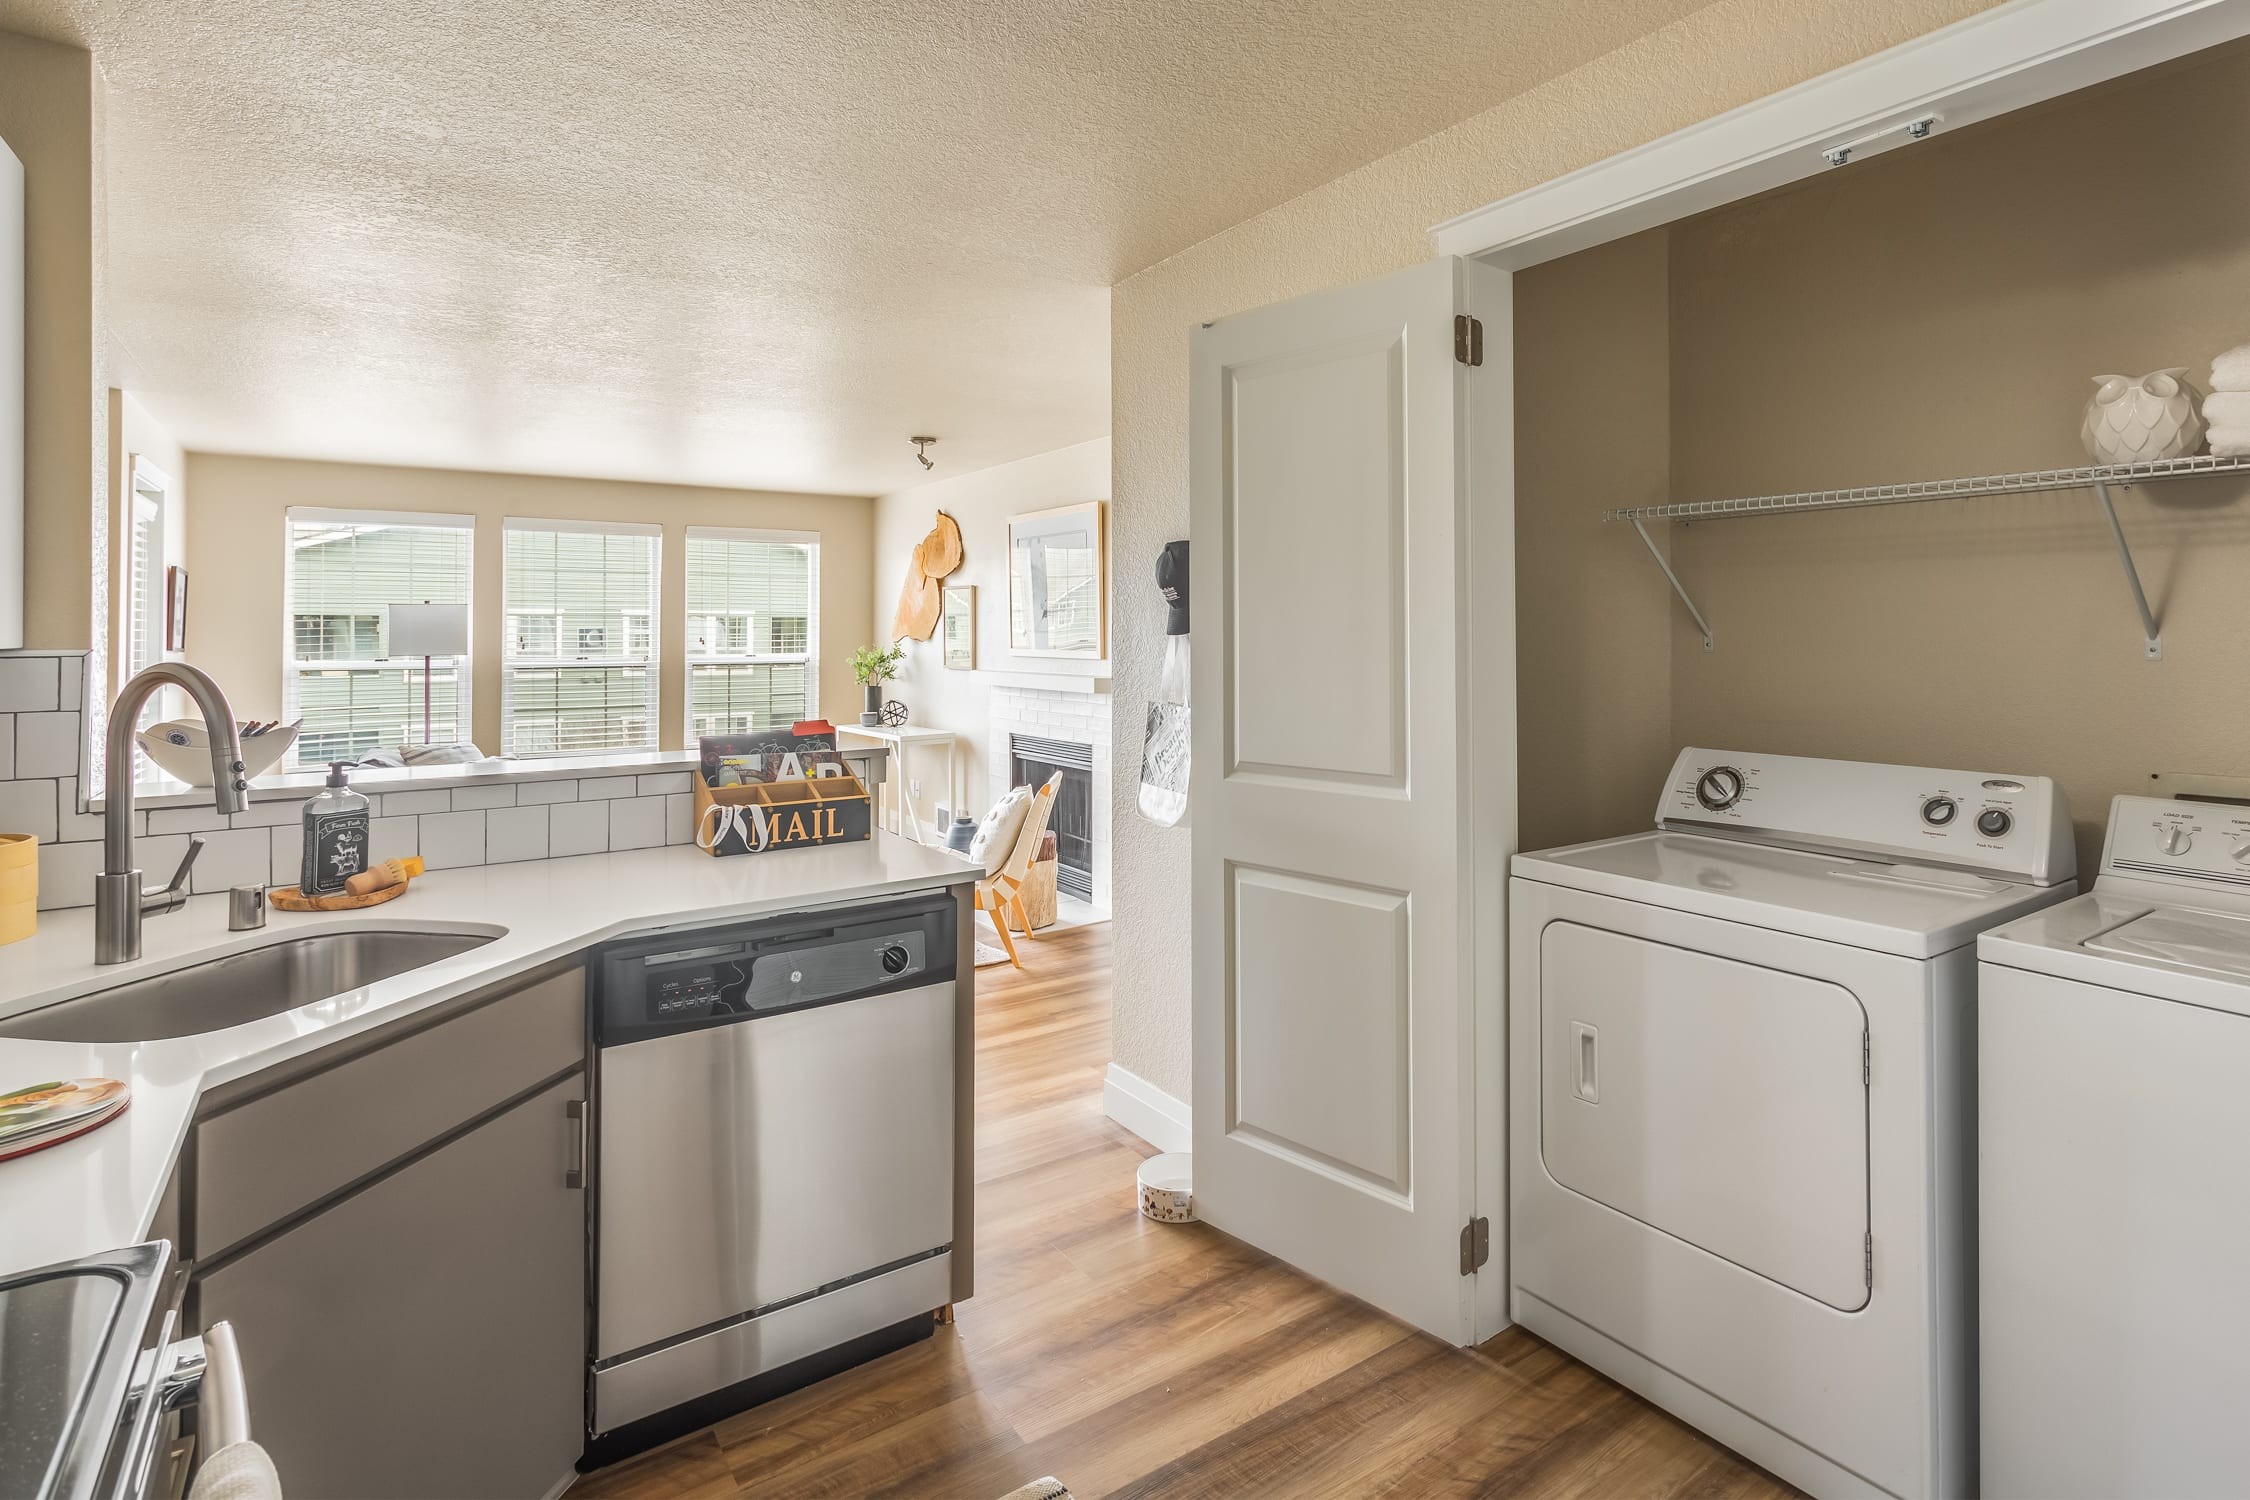 Haller Post Apartments kitchen and laundry room